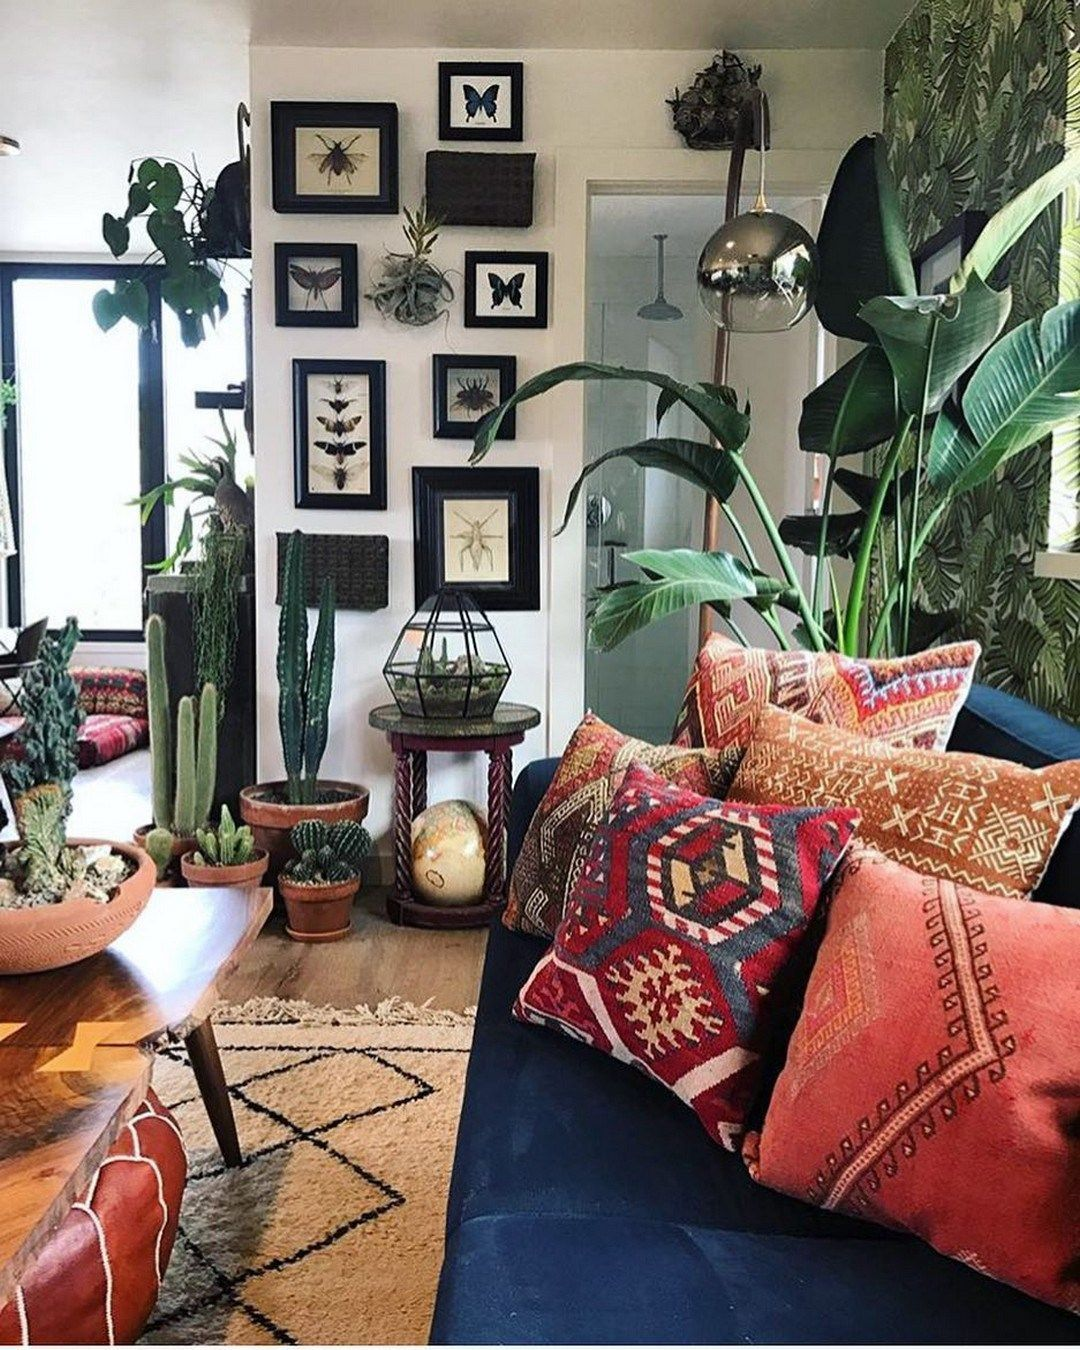 rustic and cozy boho cabin makeover on a budget 14 home decor home interior on boho chic decor living room bohemian kitchen id=42601